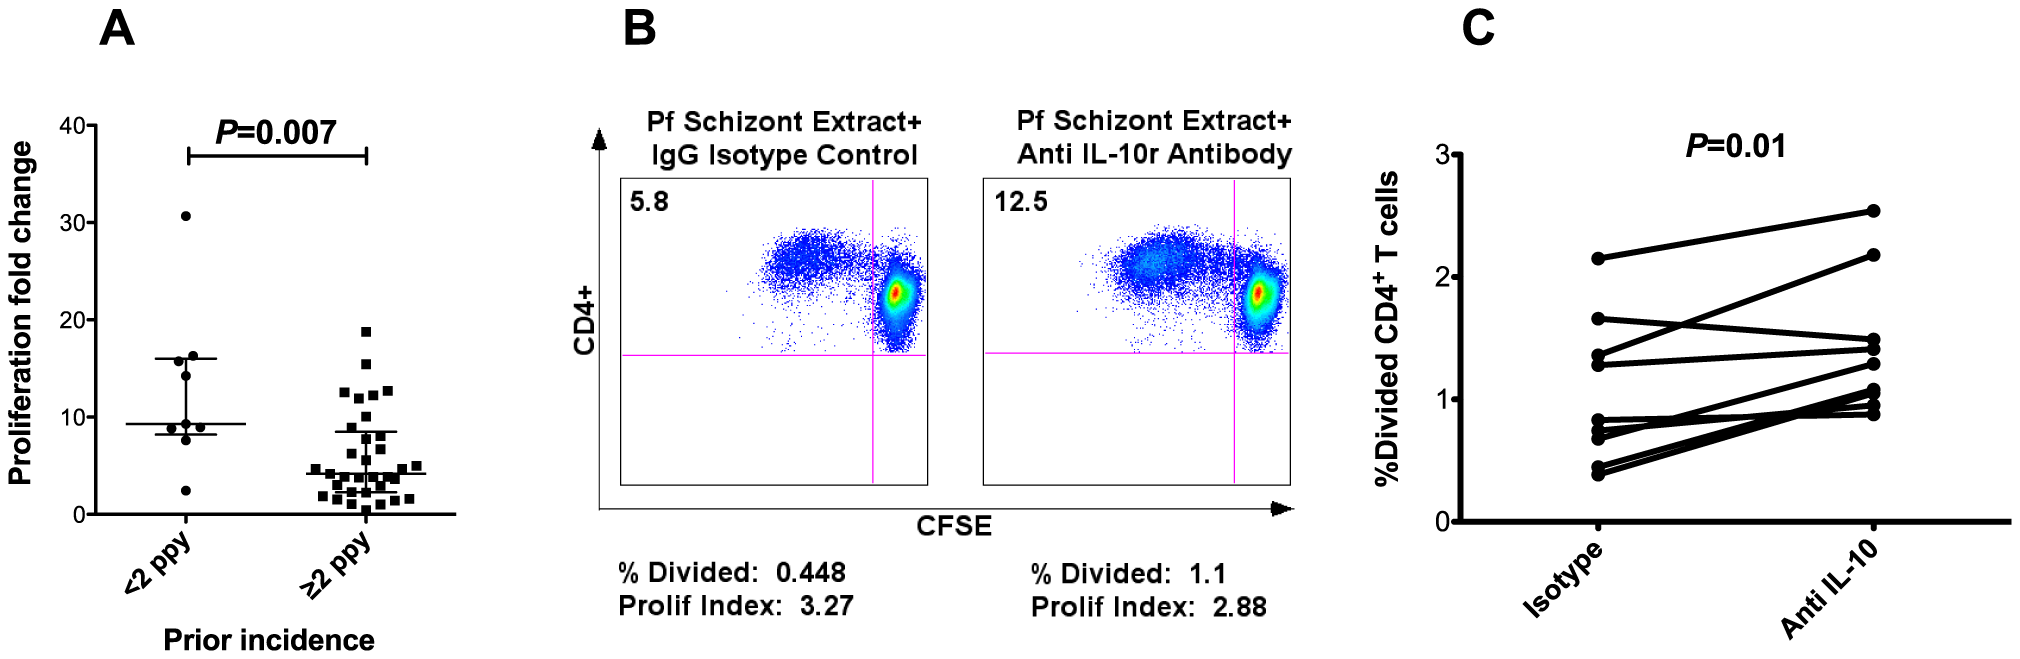 CD4<sup>+</sup> T cell proliferation impaired in setting of heavy prior exposure.